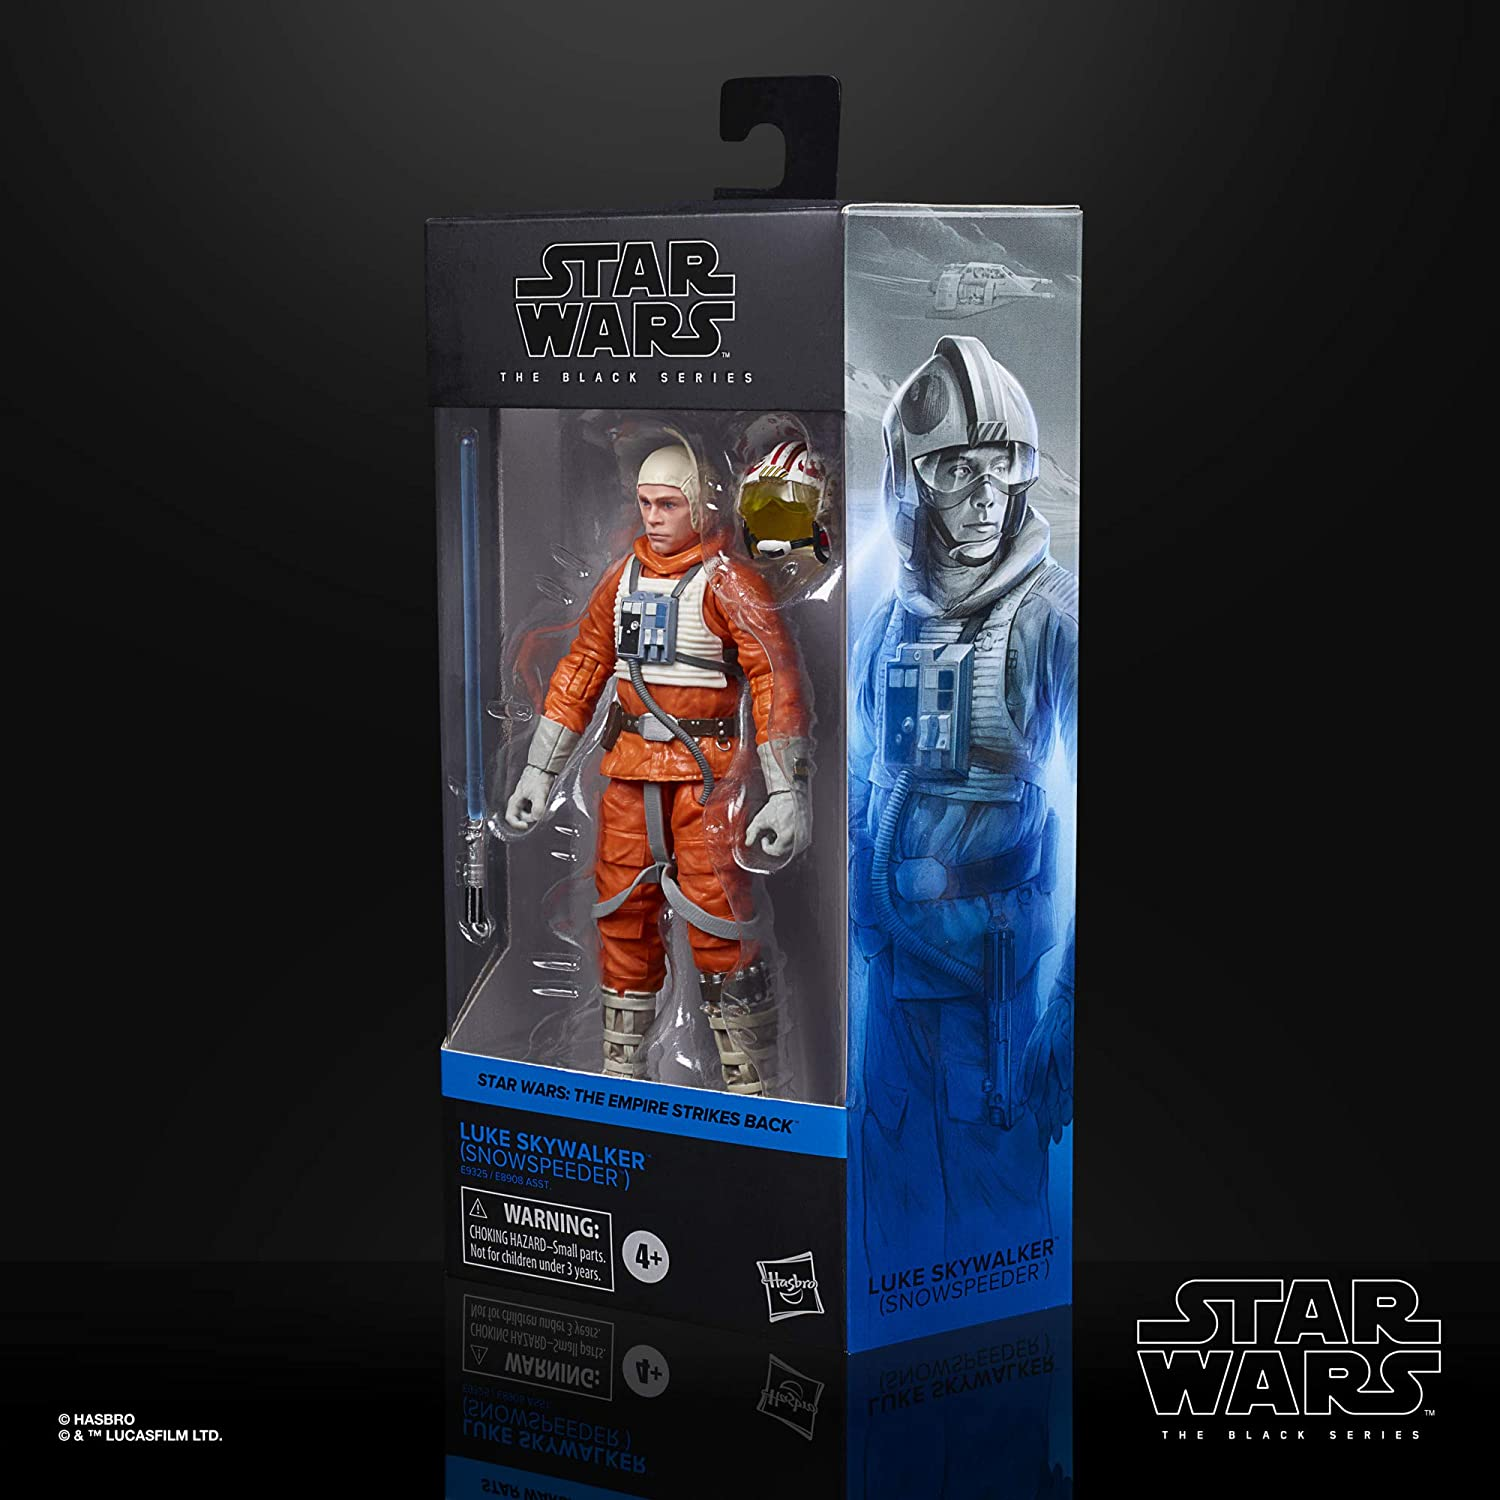 Snowspeeder Star Wars The Black Series Luke Skywalker Toy 6-Inch-Scale The Empire Strikes Back Collectible Action Figure